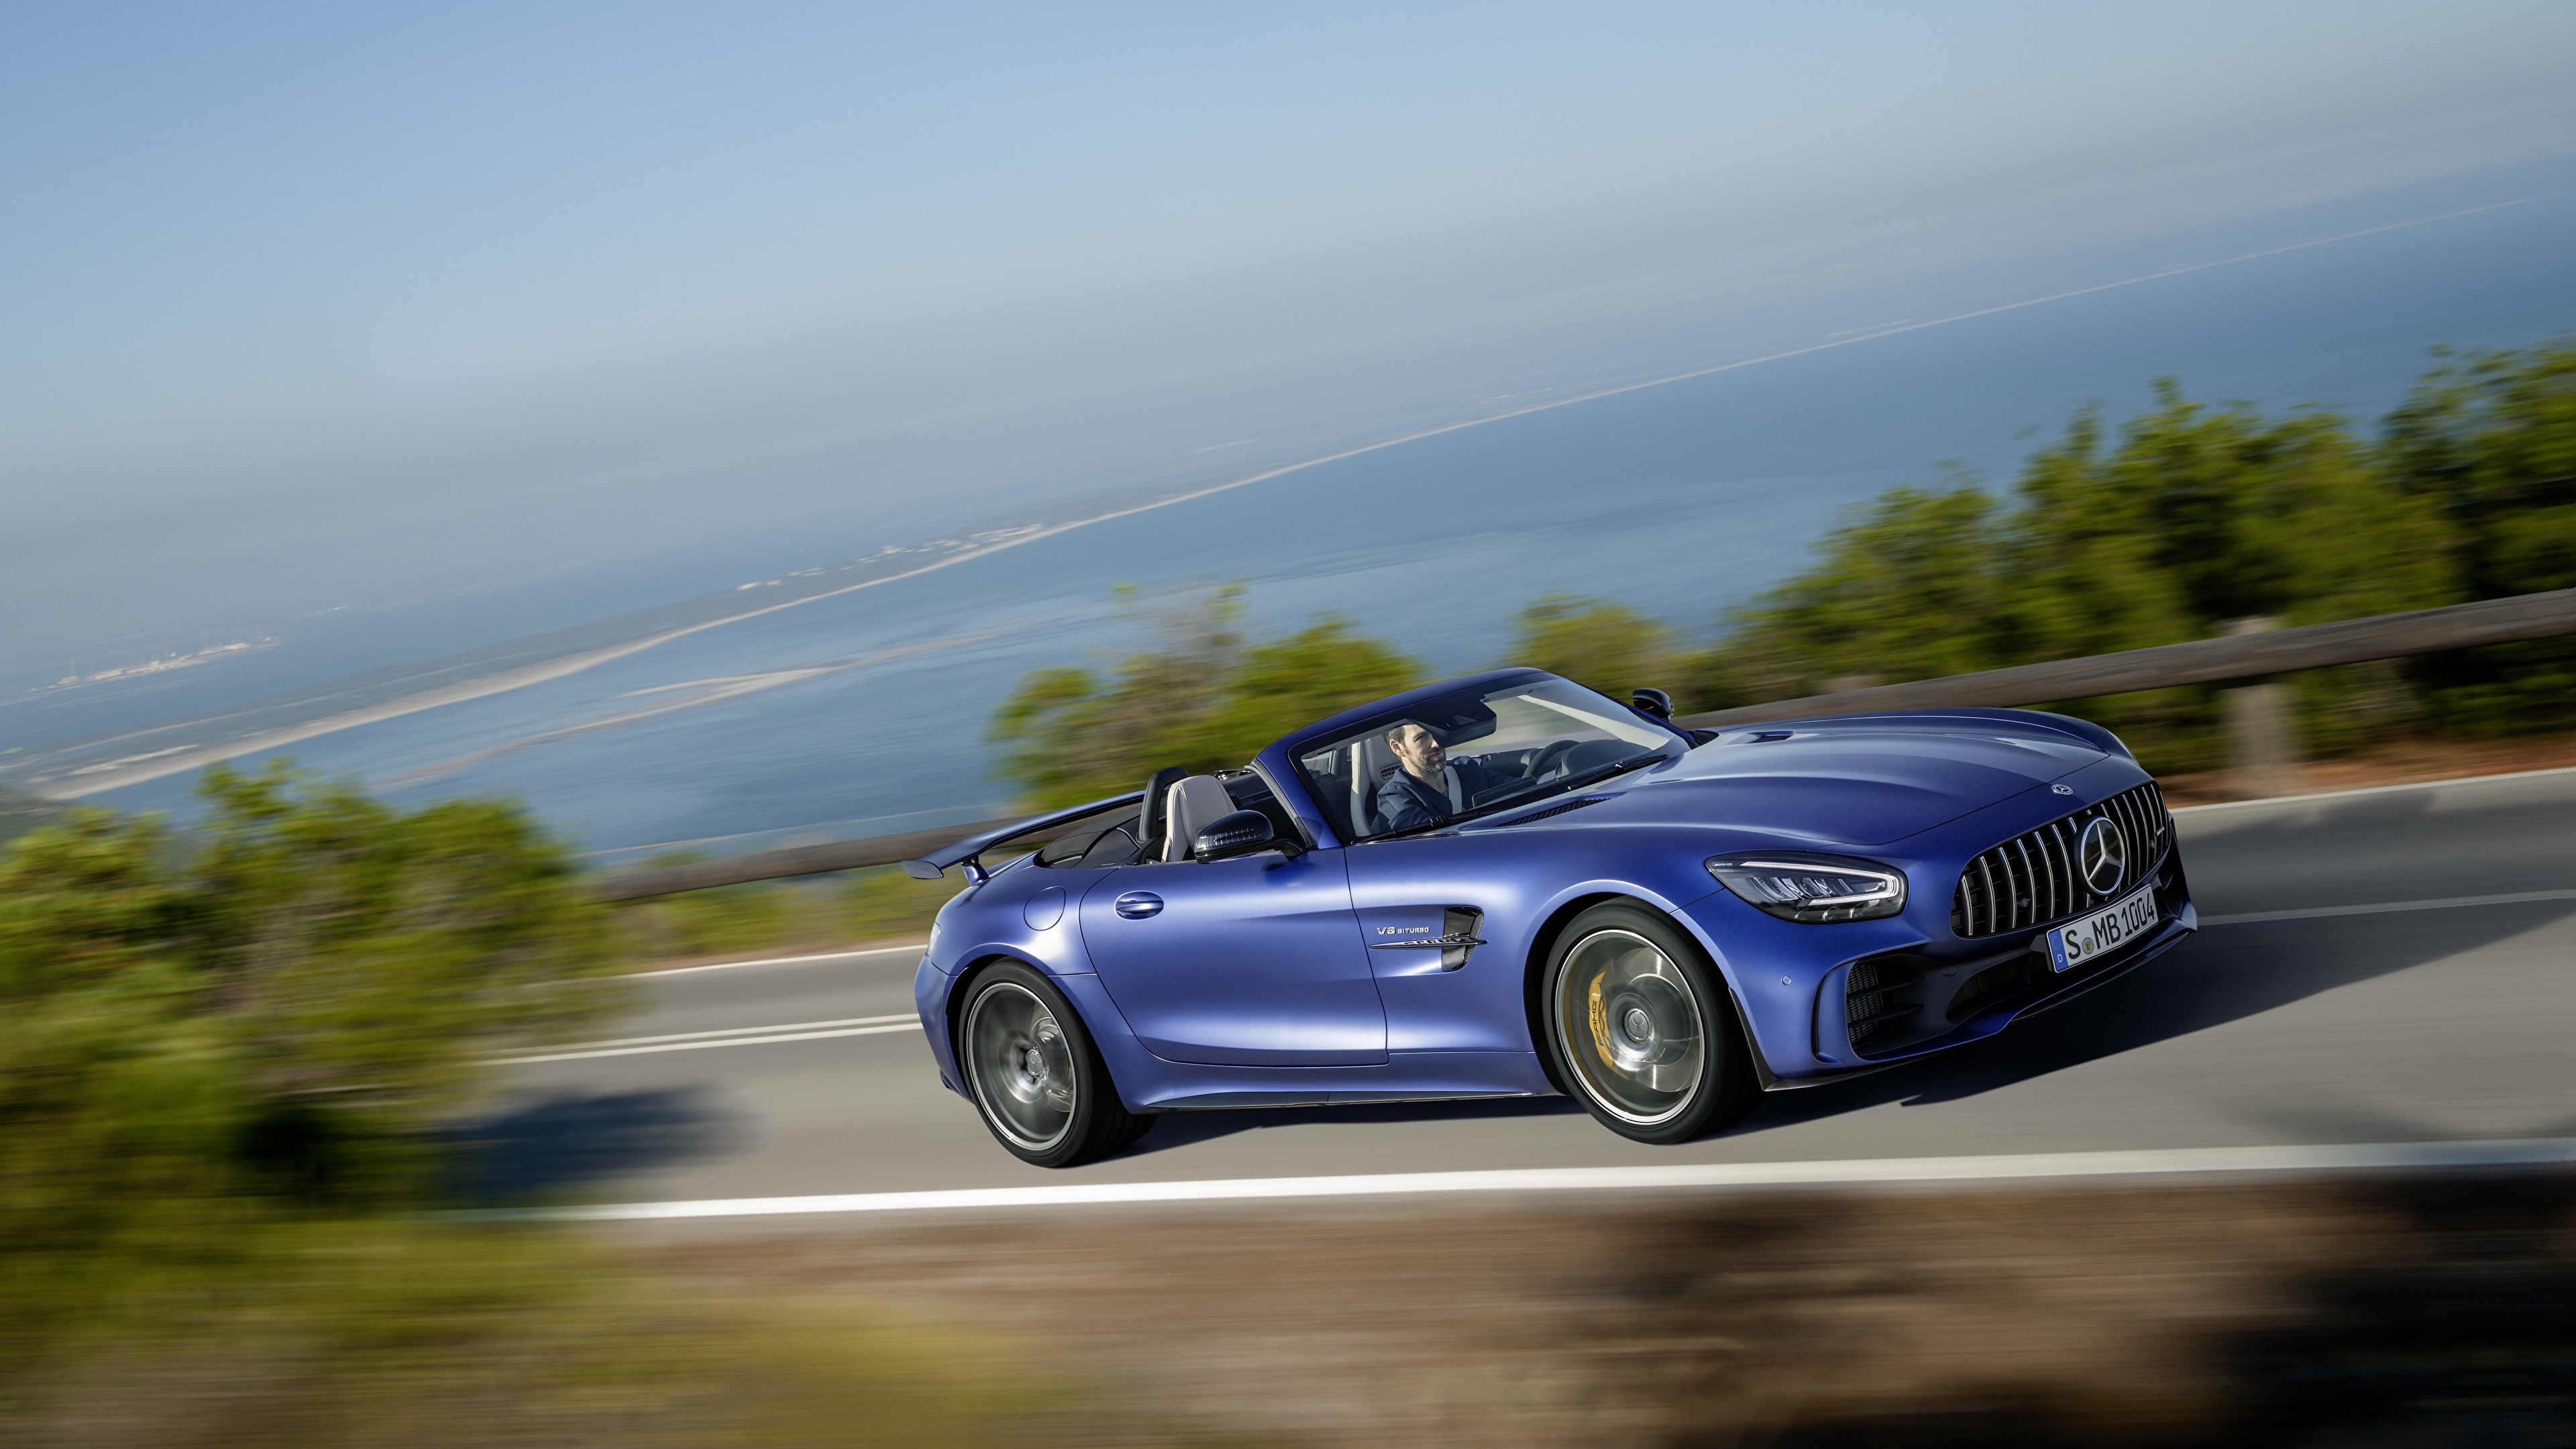 Pictures Mercedes Benz Gt R Amg Convertible Blue Moving 3840x2160